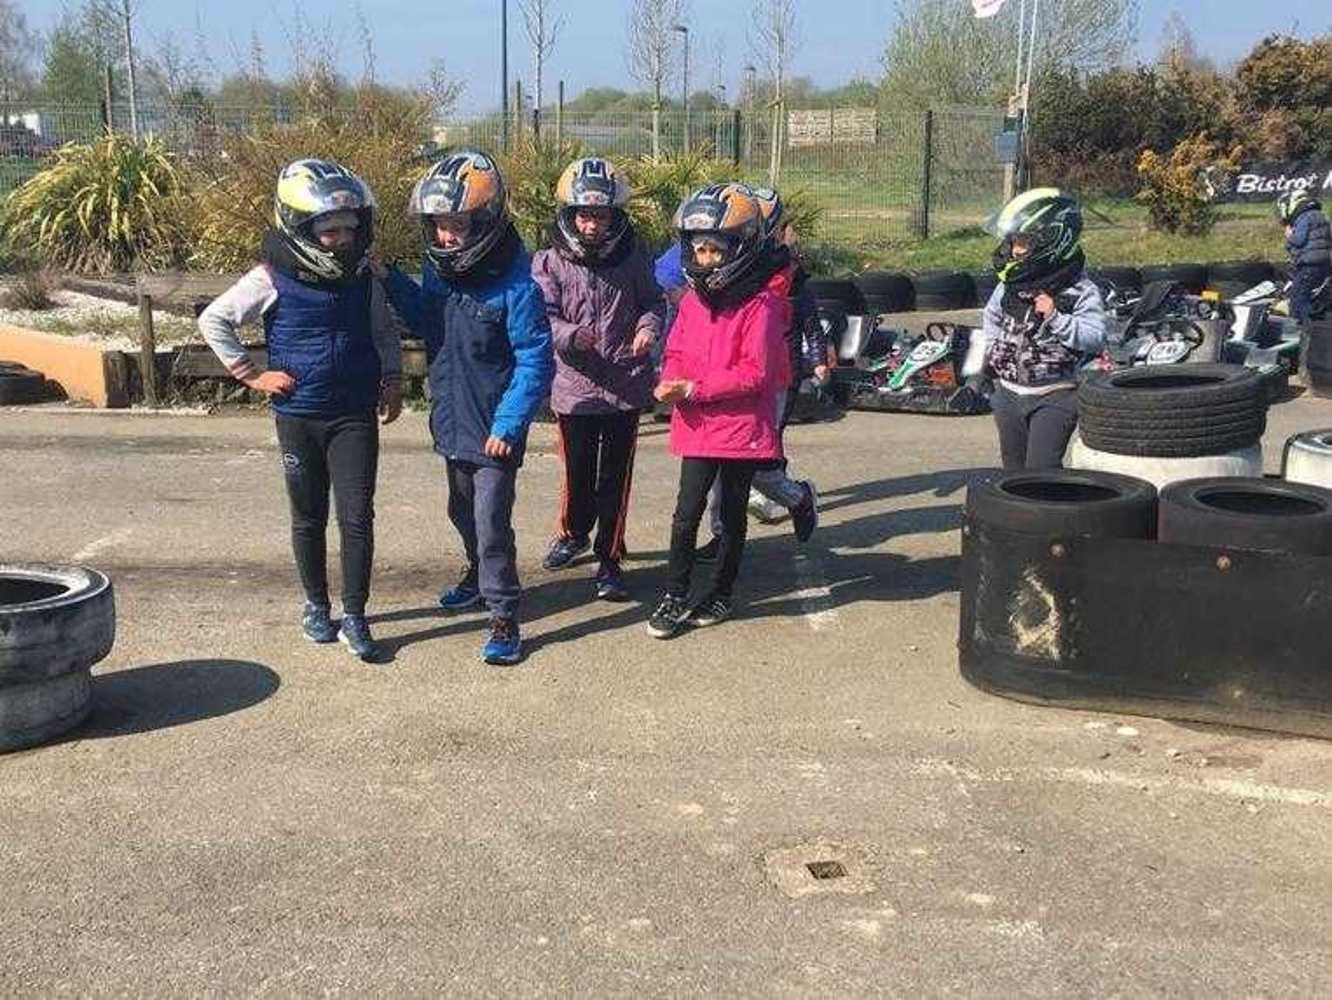 Cap Sports : photos de la sortie karting image14